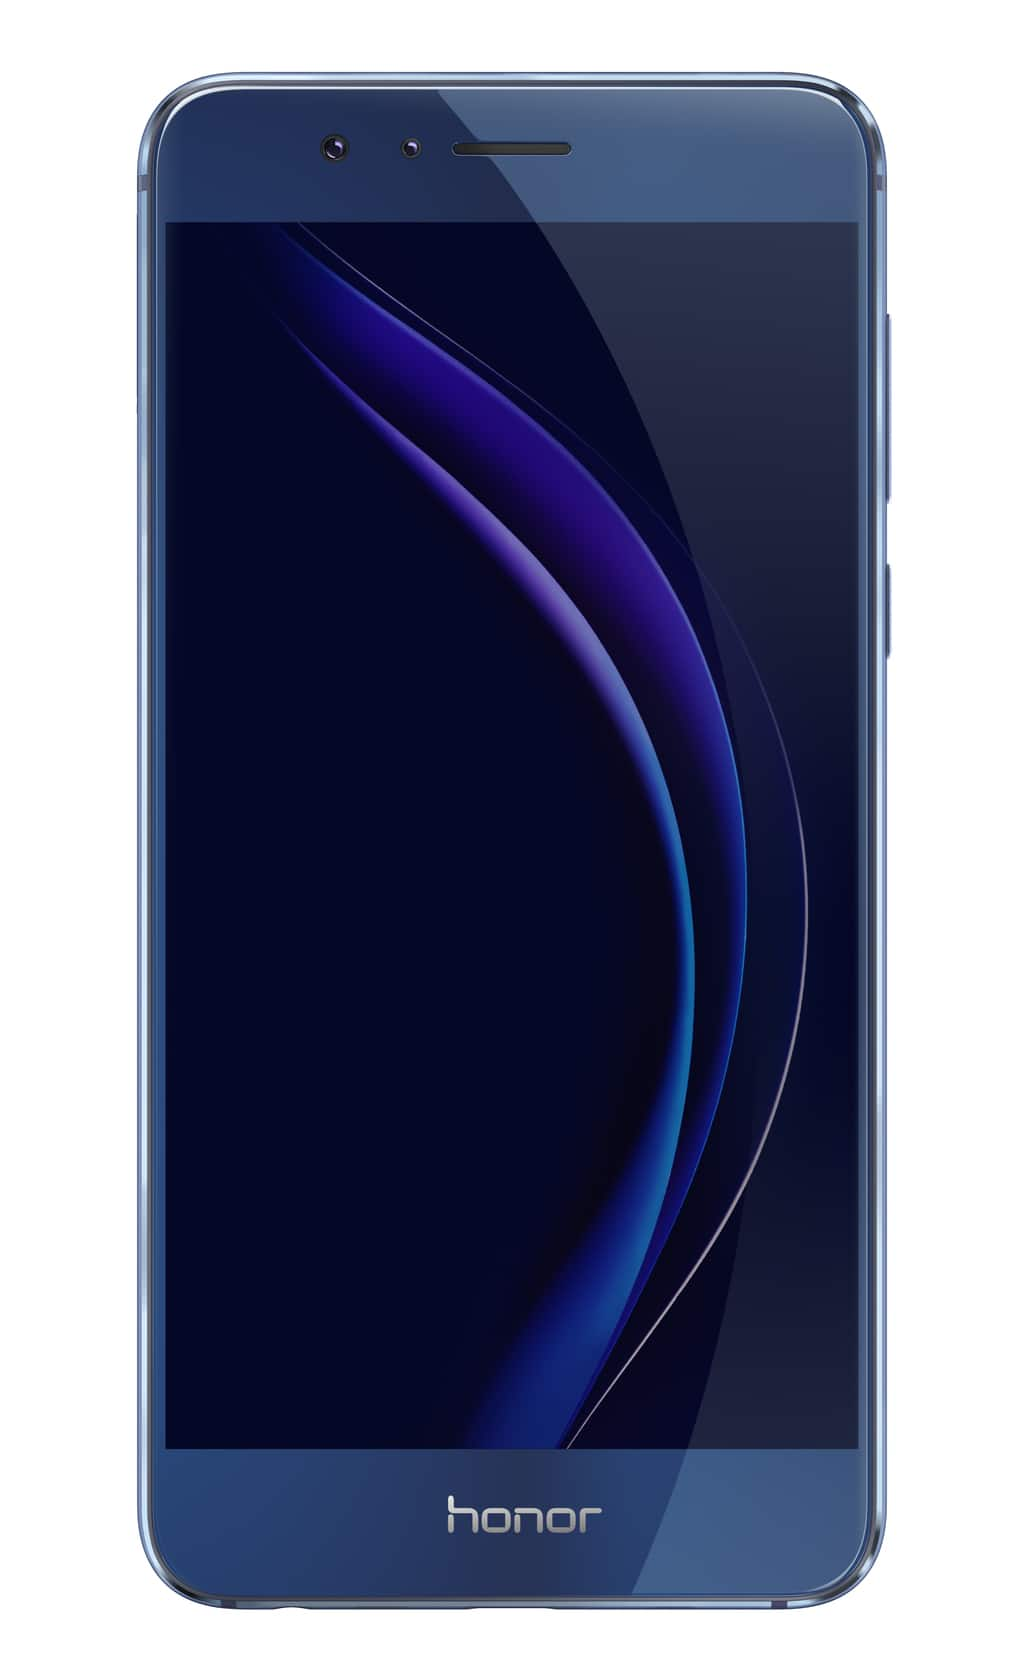 Get Freedom With The Huawei Honor 8